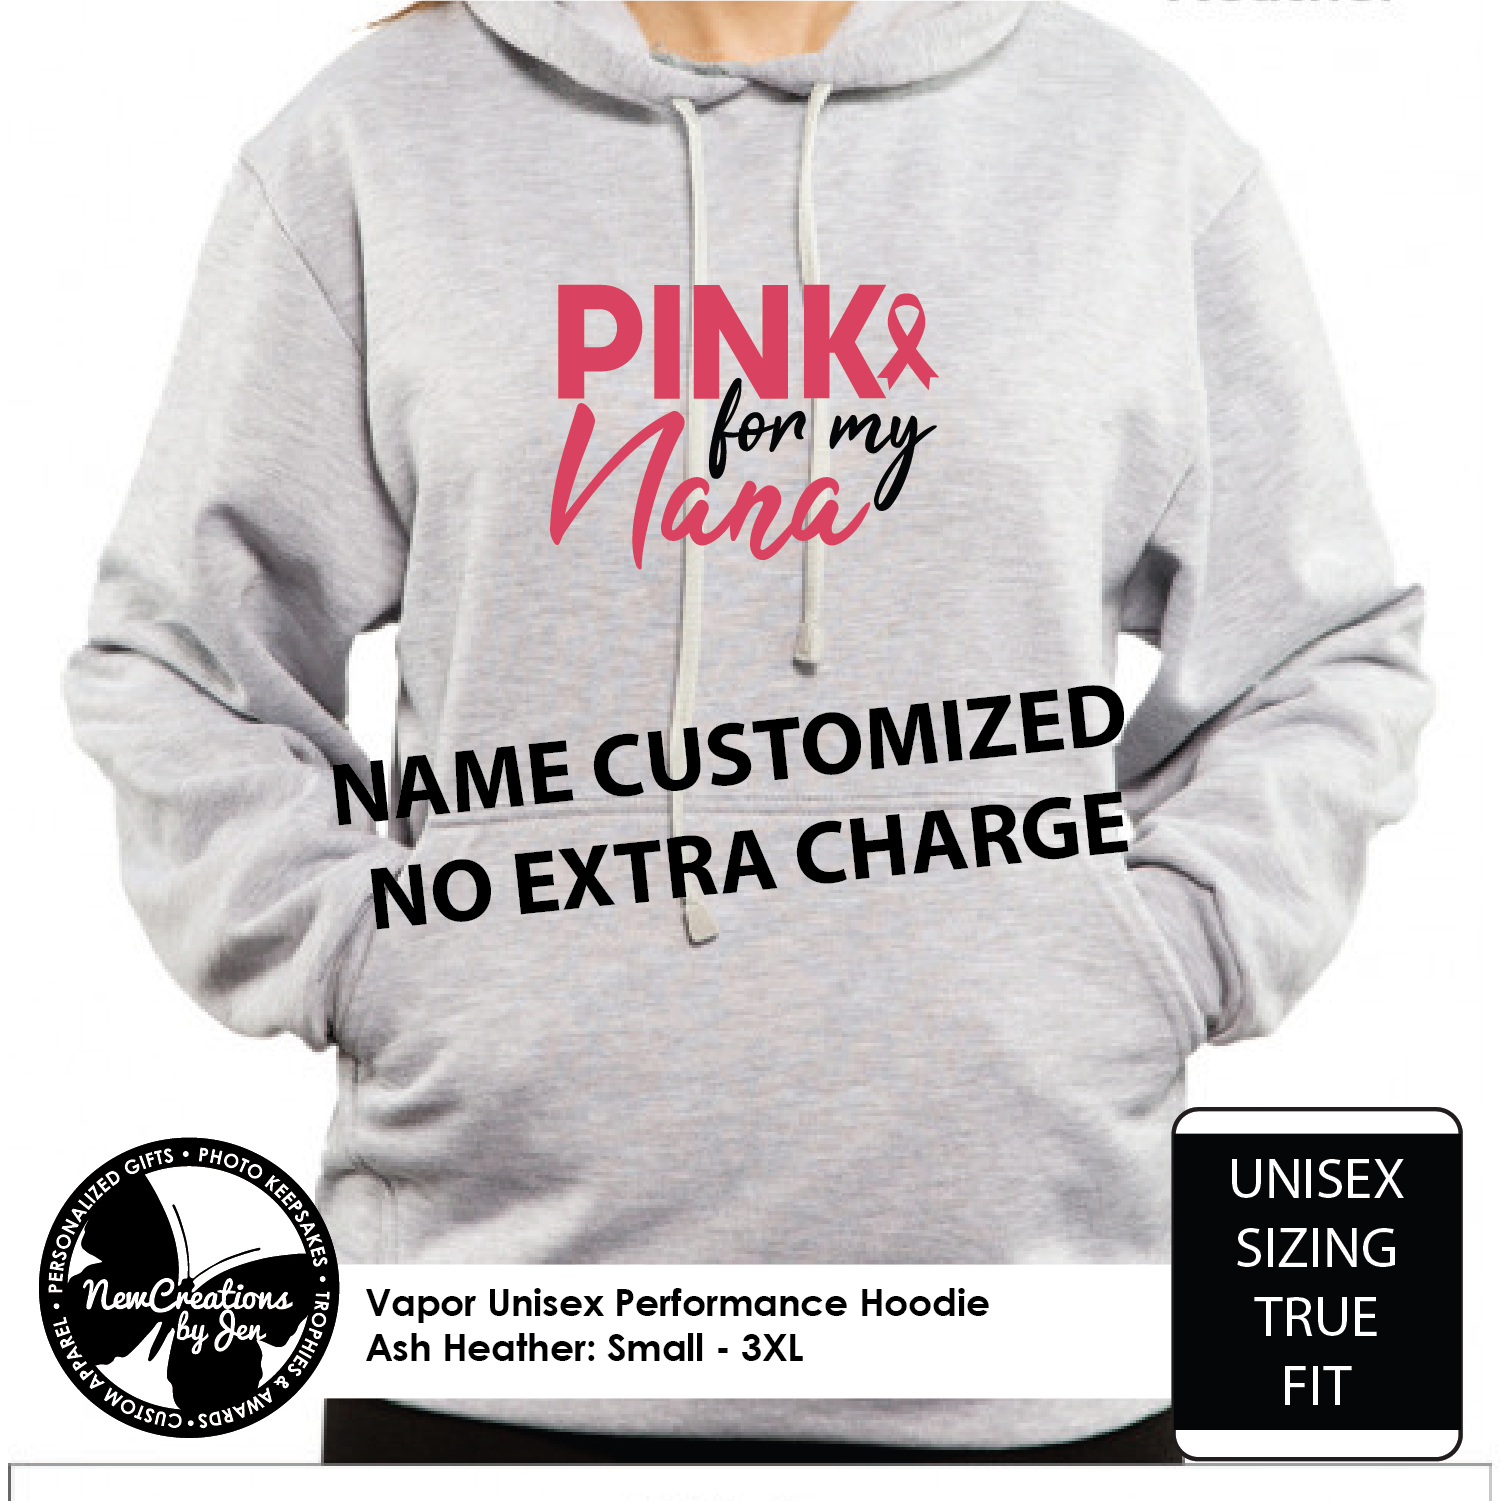 Pink for Nana - Name customized no extra charge